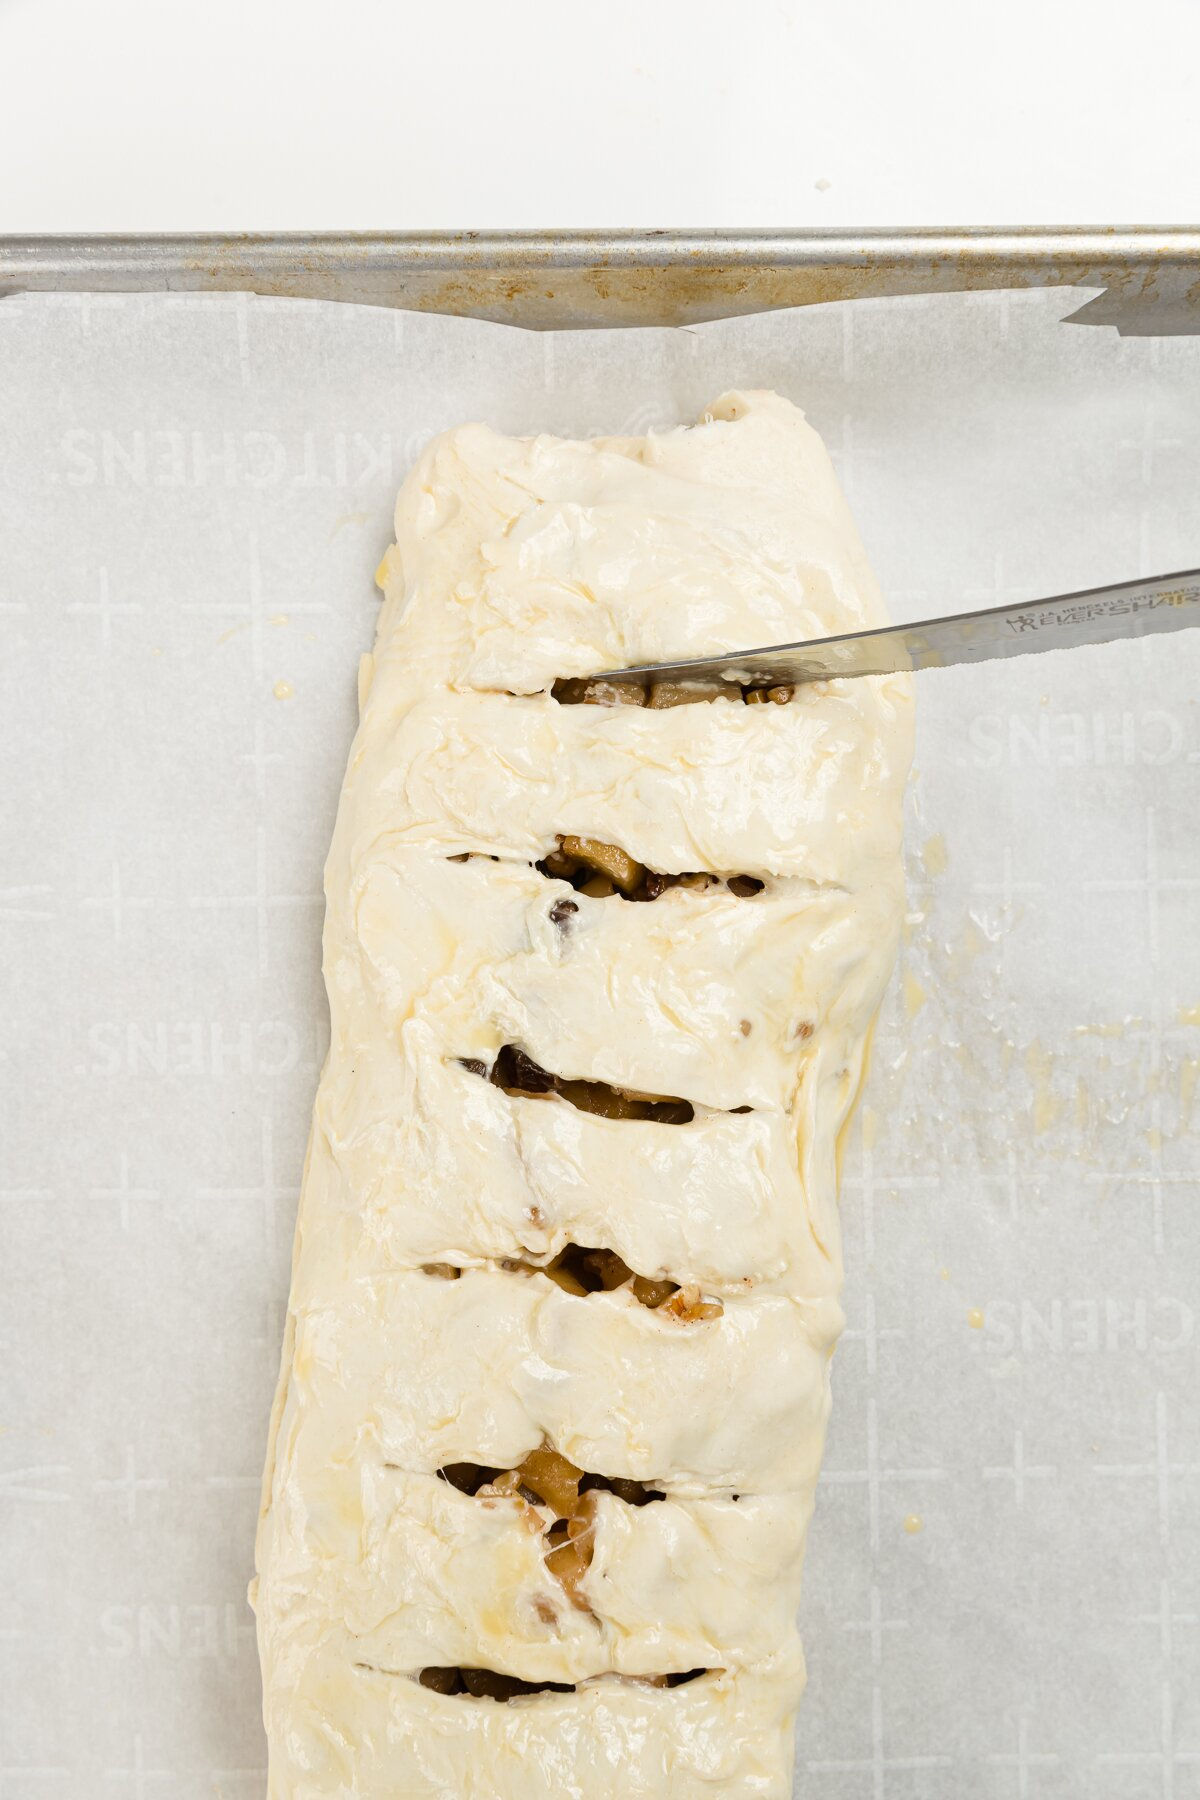 Cutting slits into rolled puff pastry